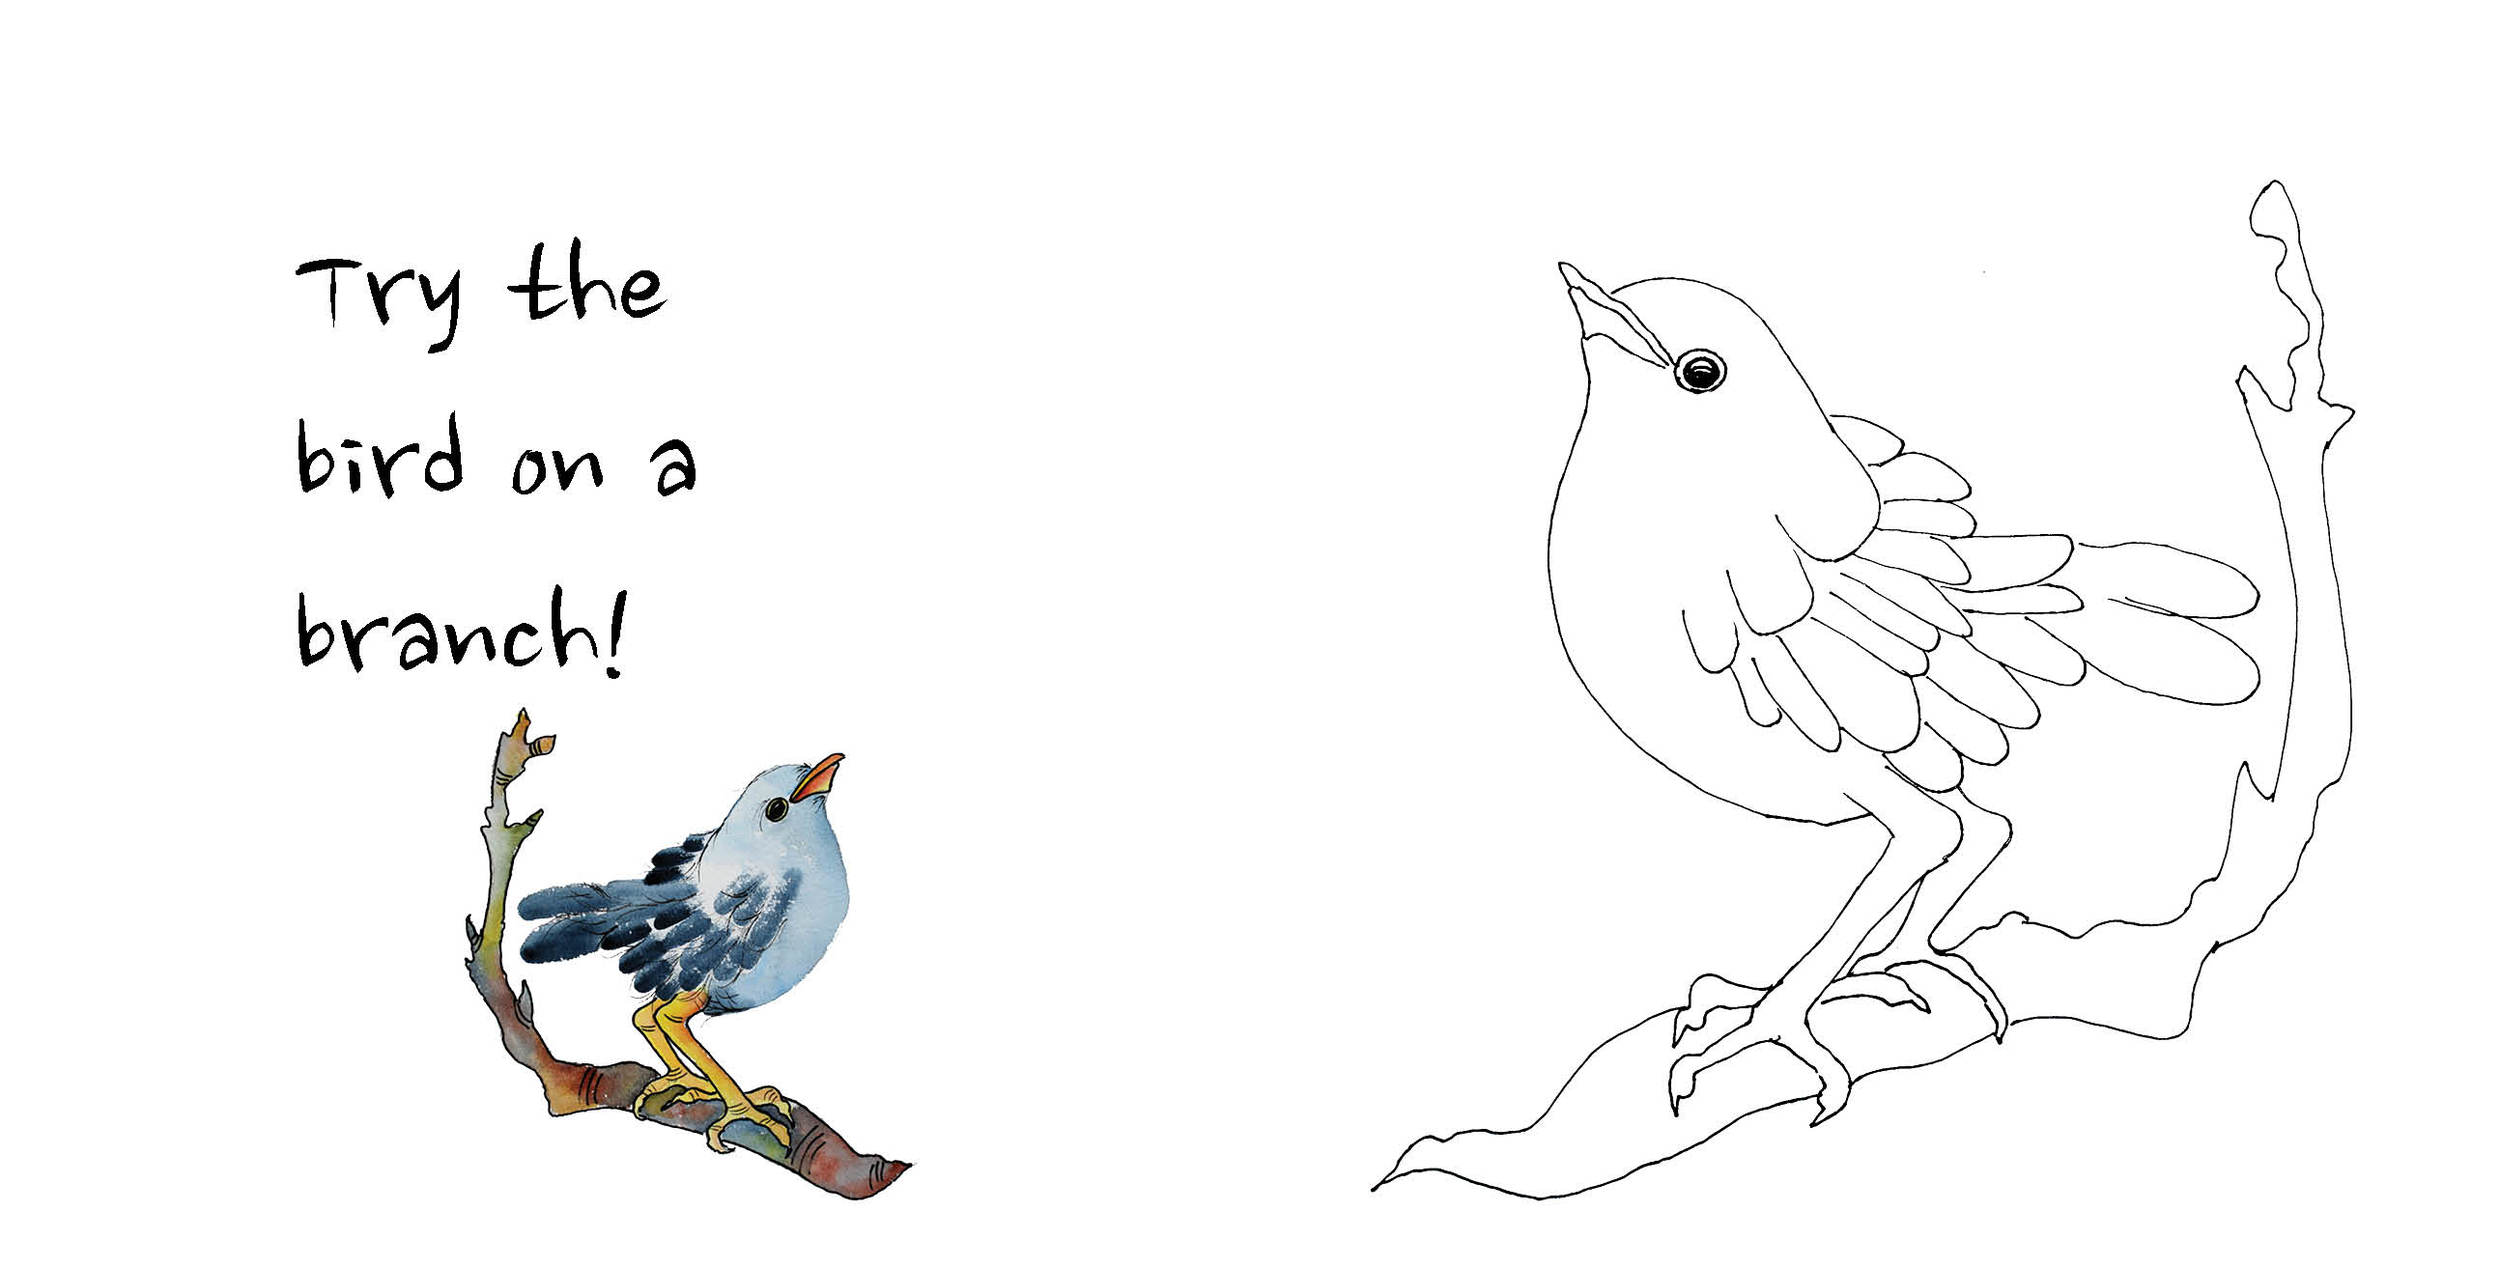 If You Were a Bird 3 pages19.jpg